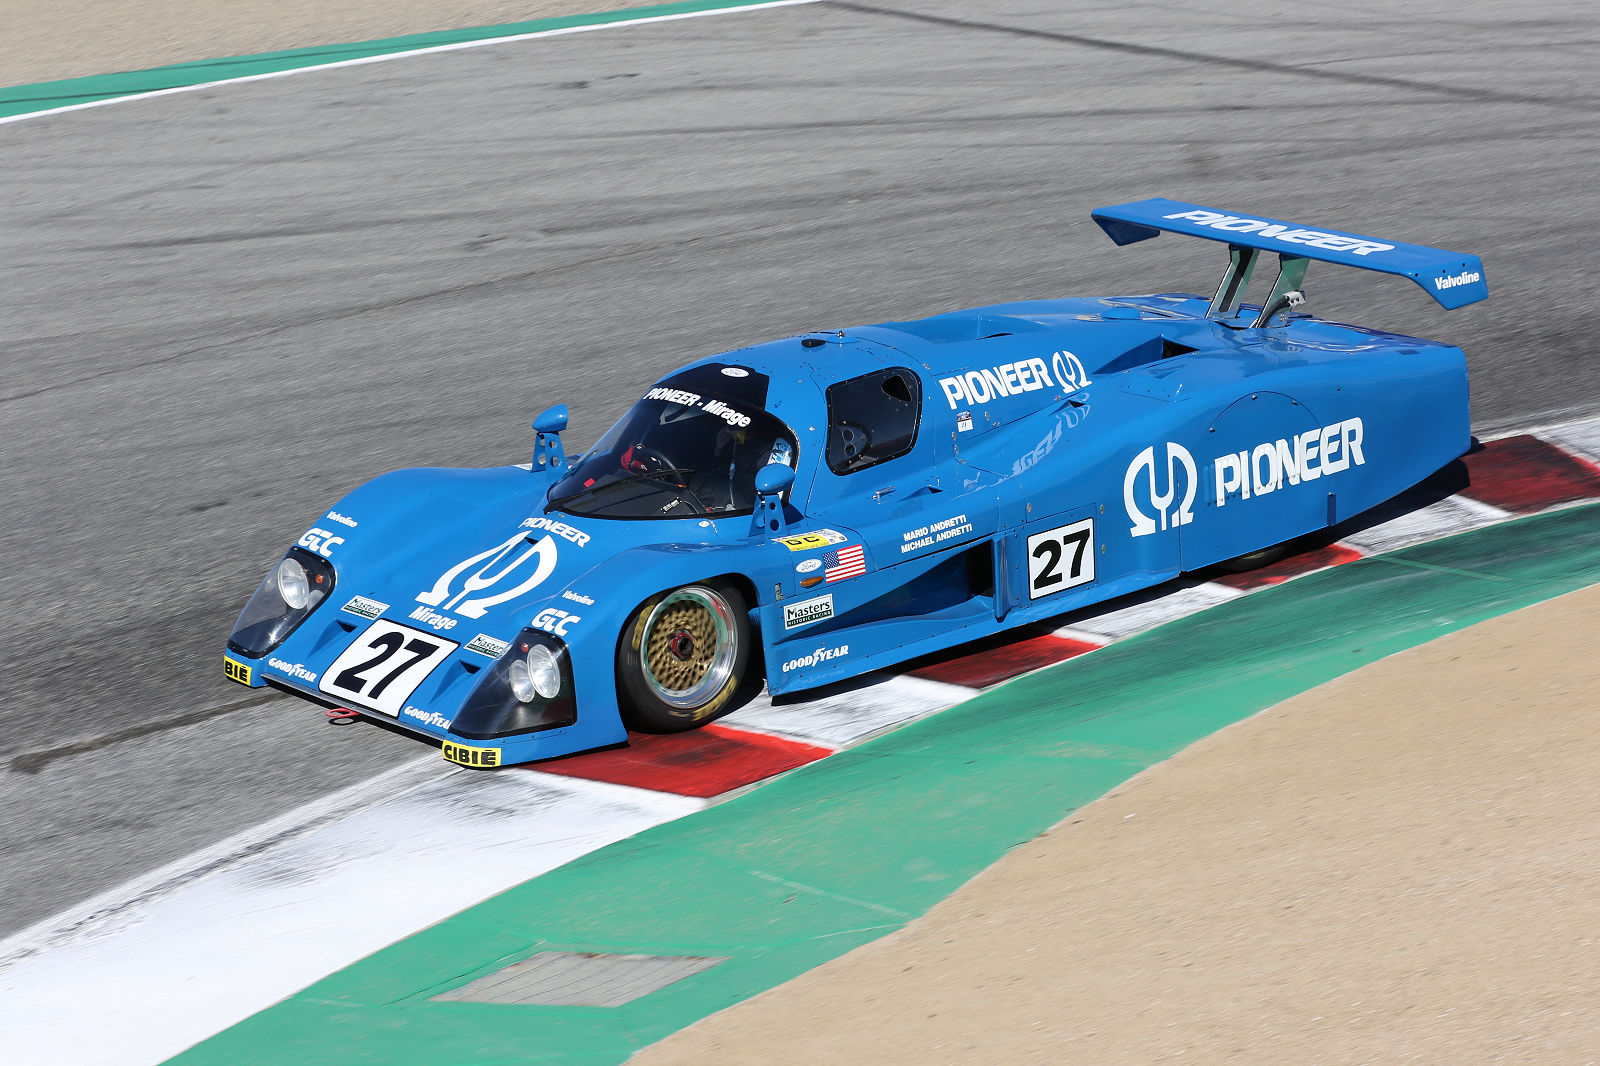 Racing at the Rolex Monterey Motorsports Reunion